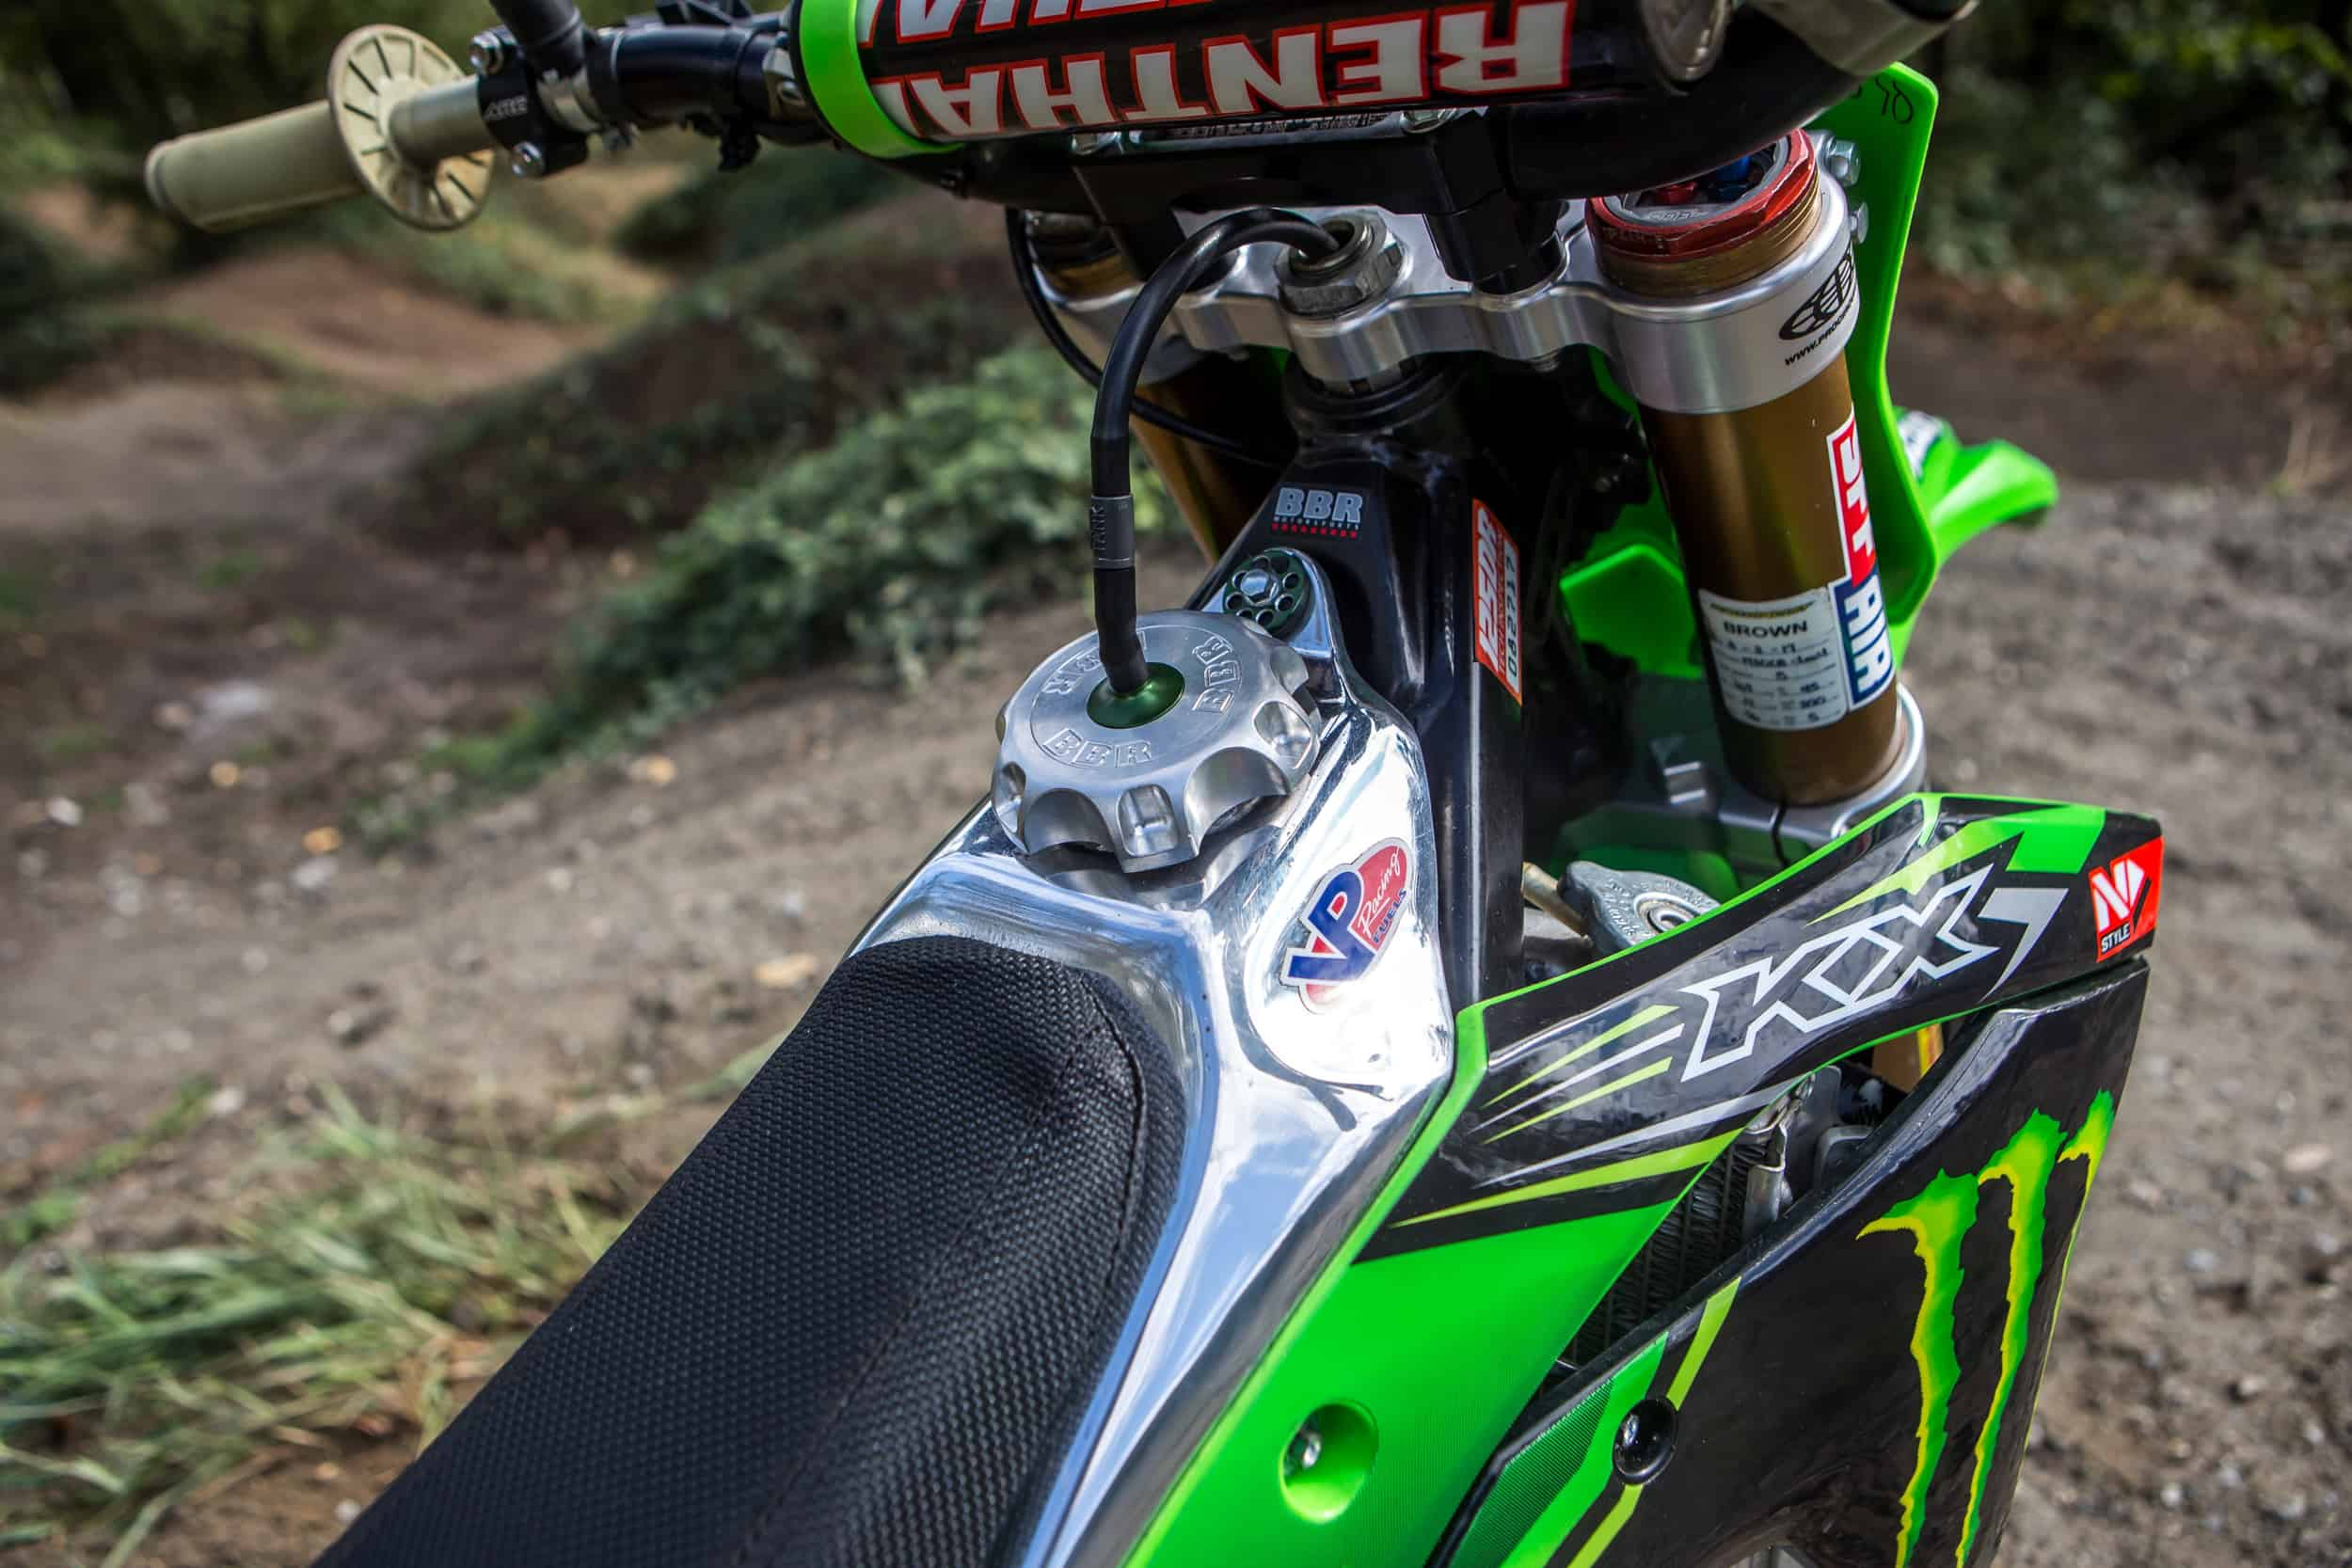 TWO STROKE TUESDAY WHAT A 2018 KX125 WOULD LOOK LIKE